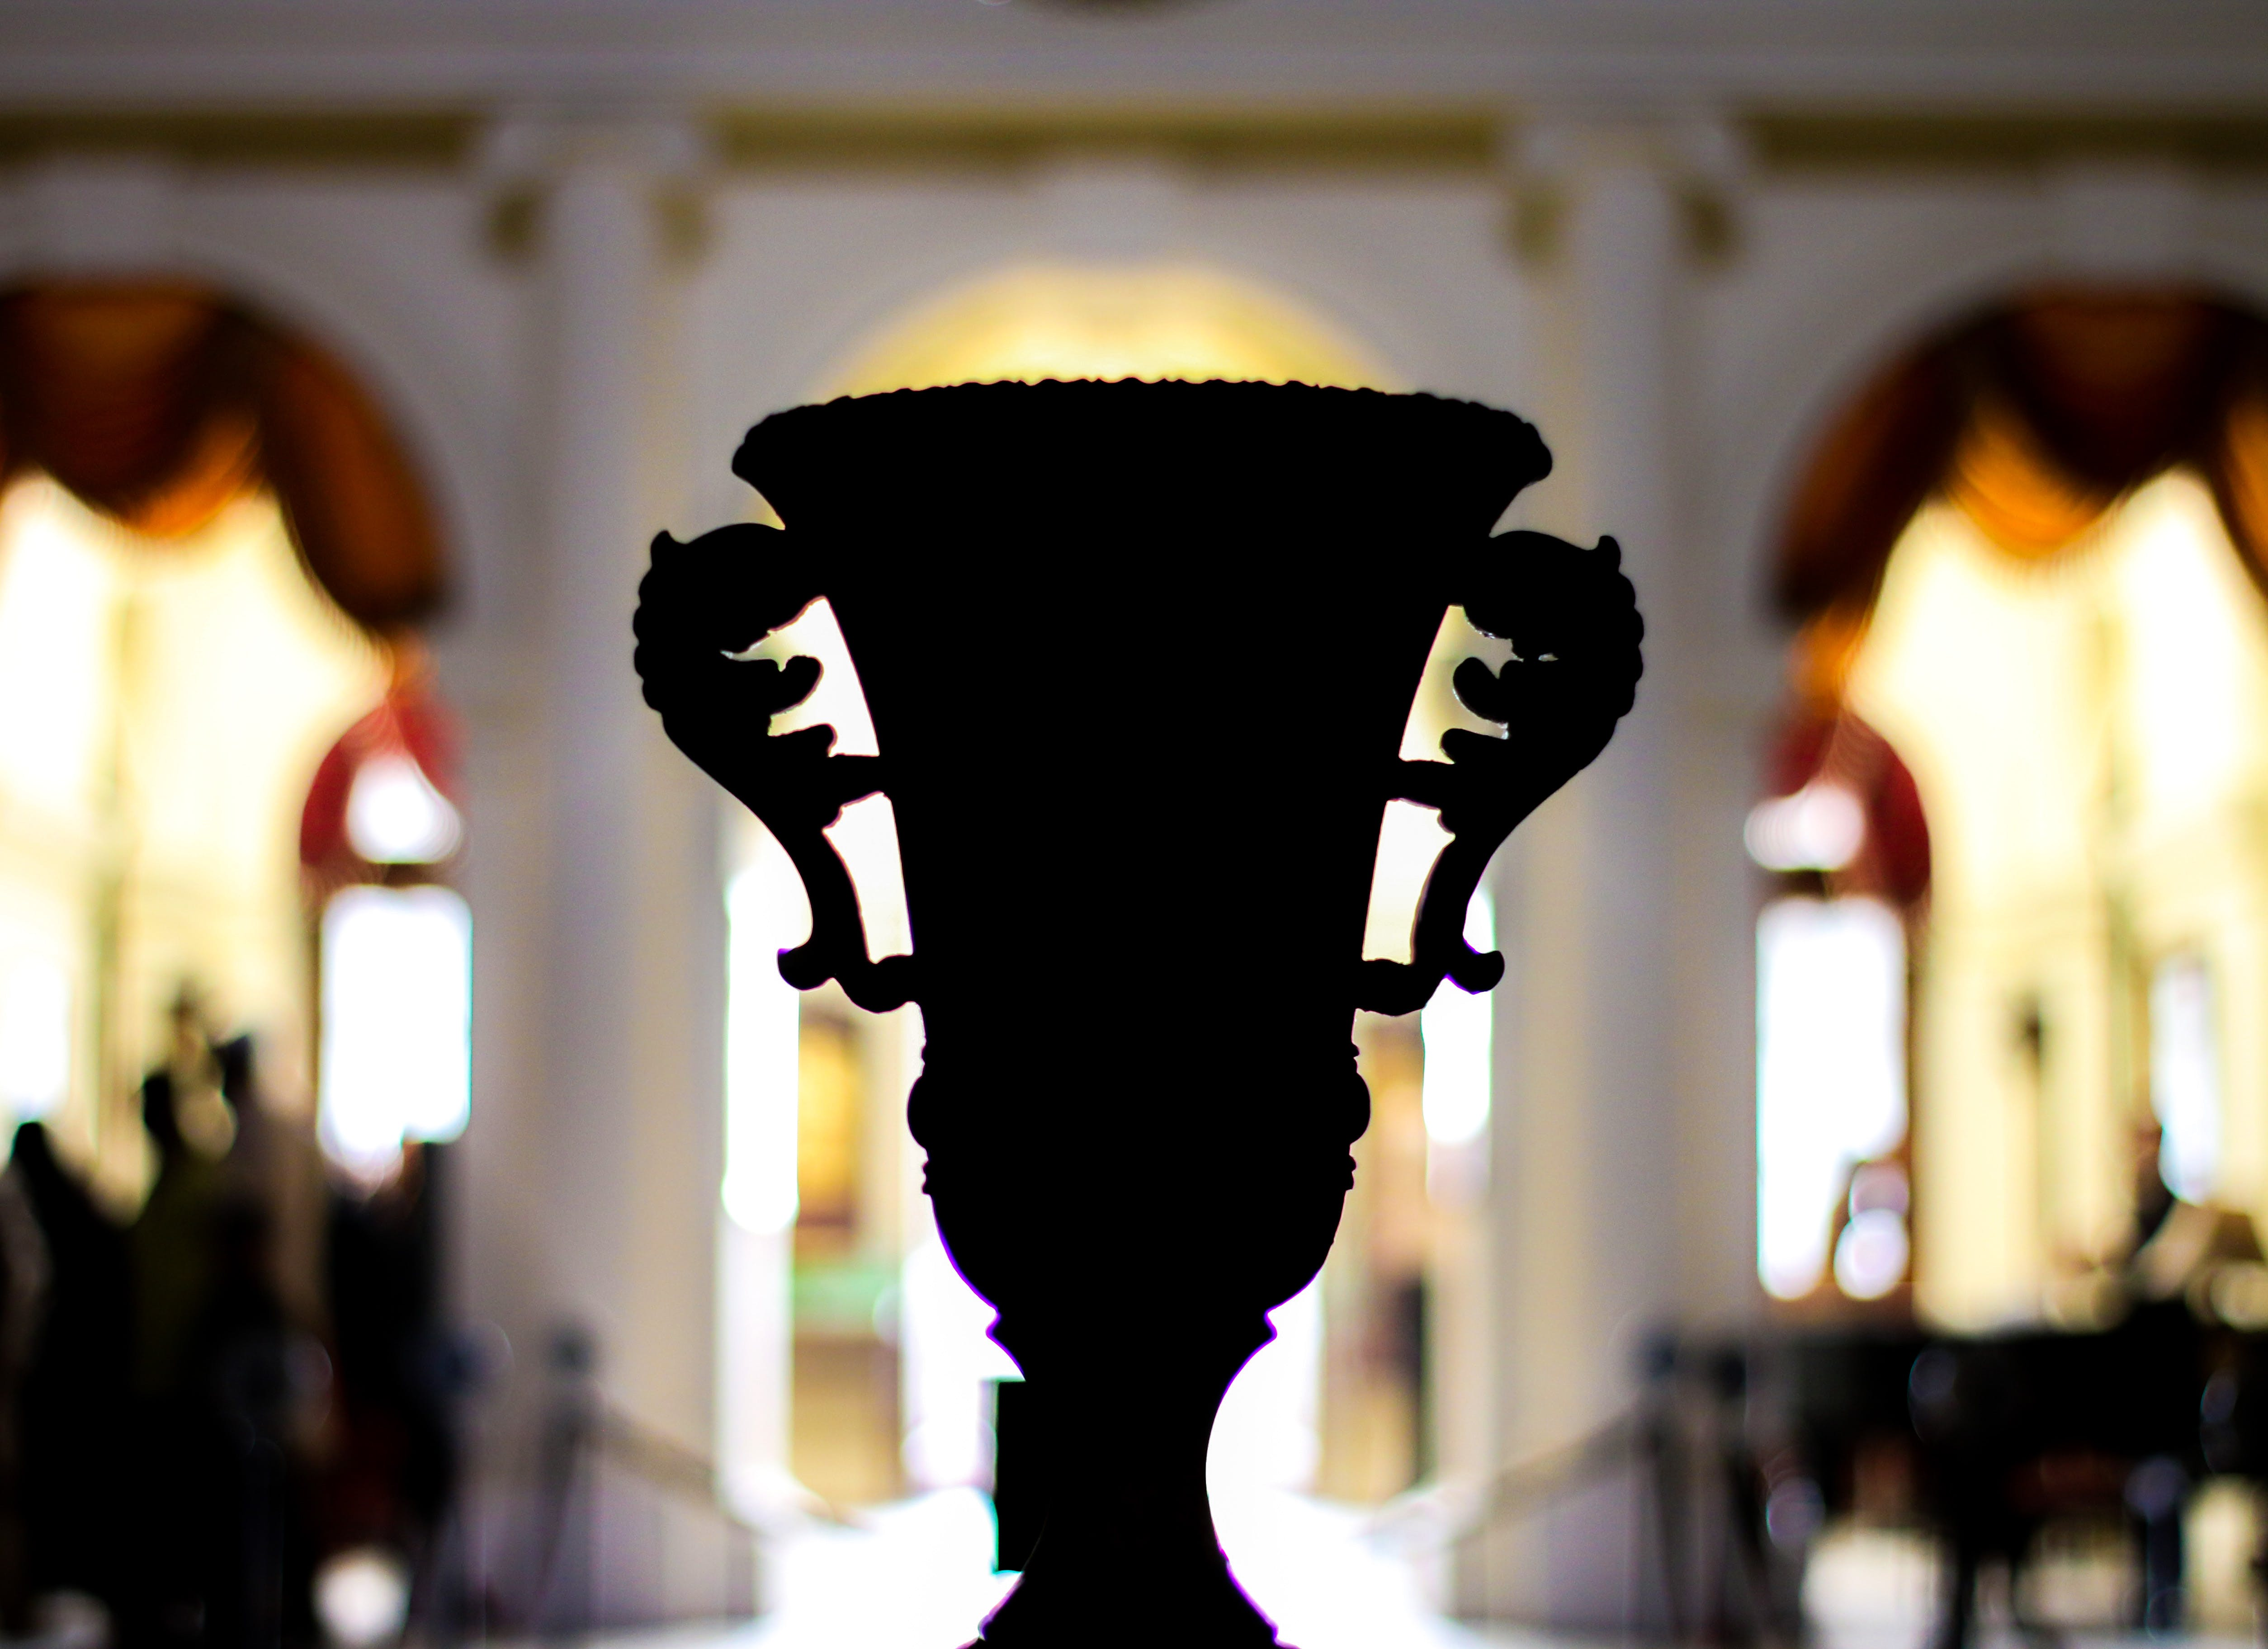 Silhouette of a Cup